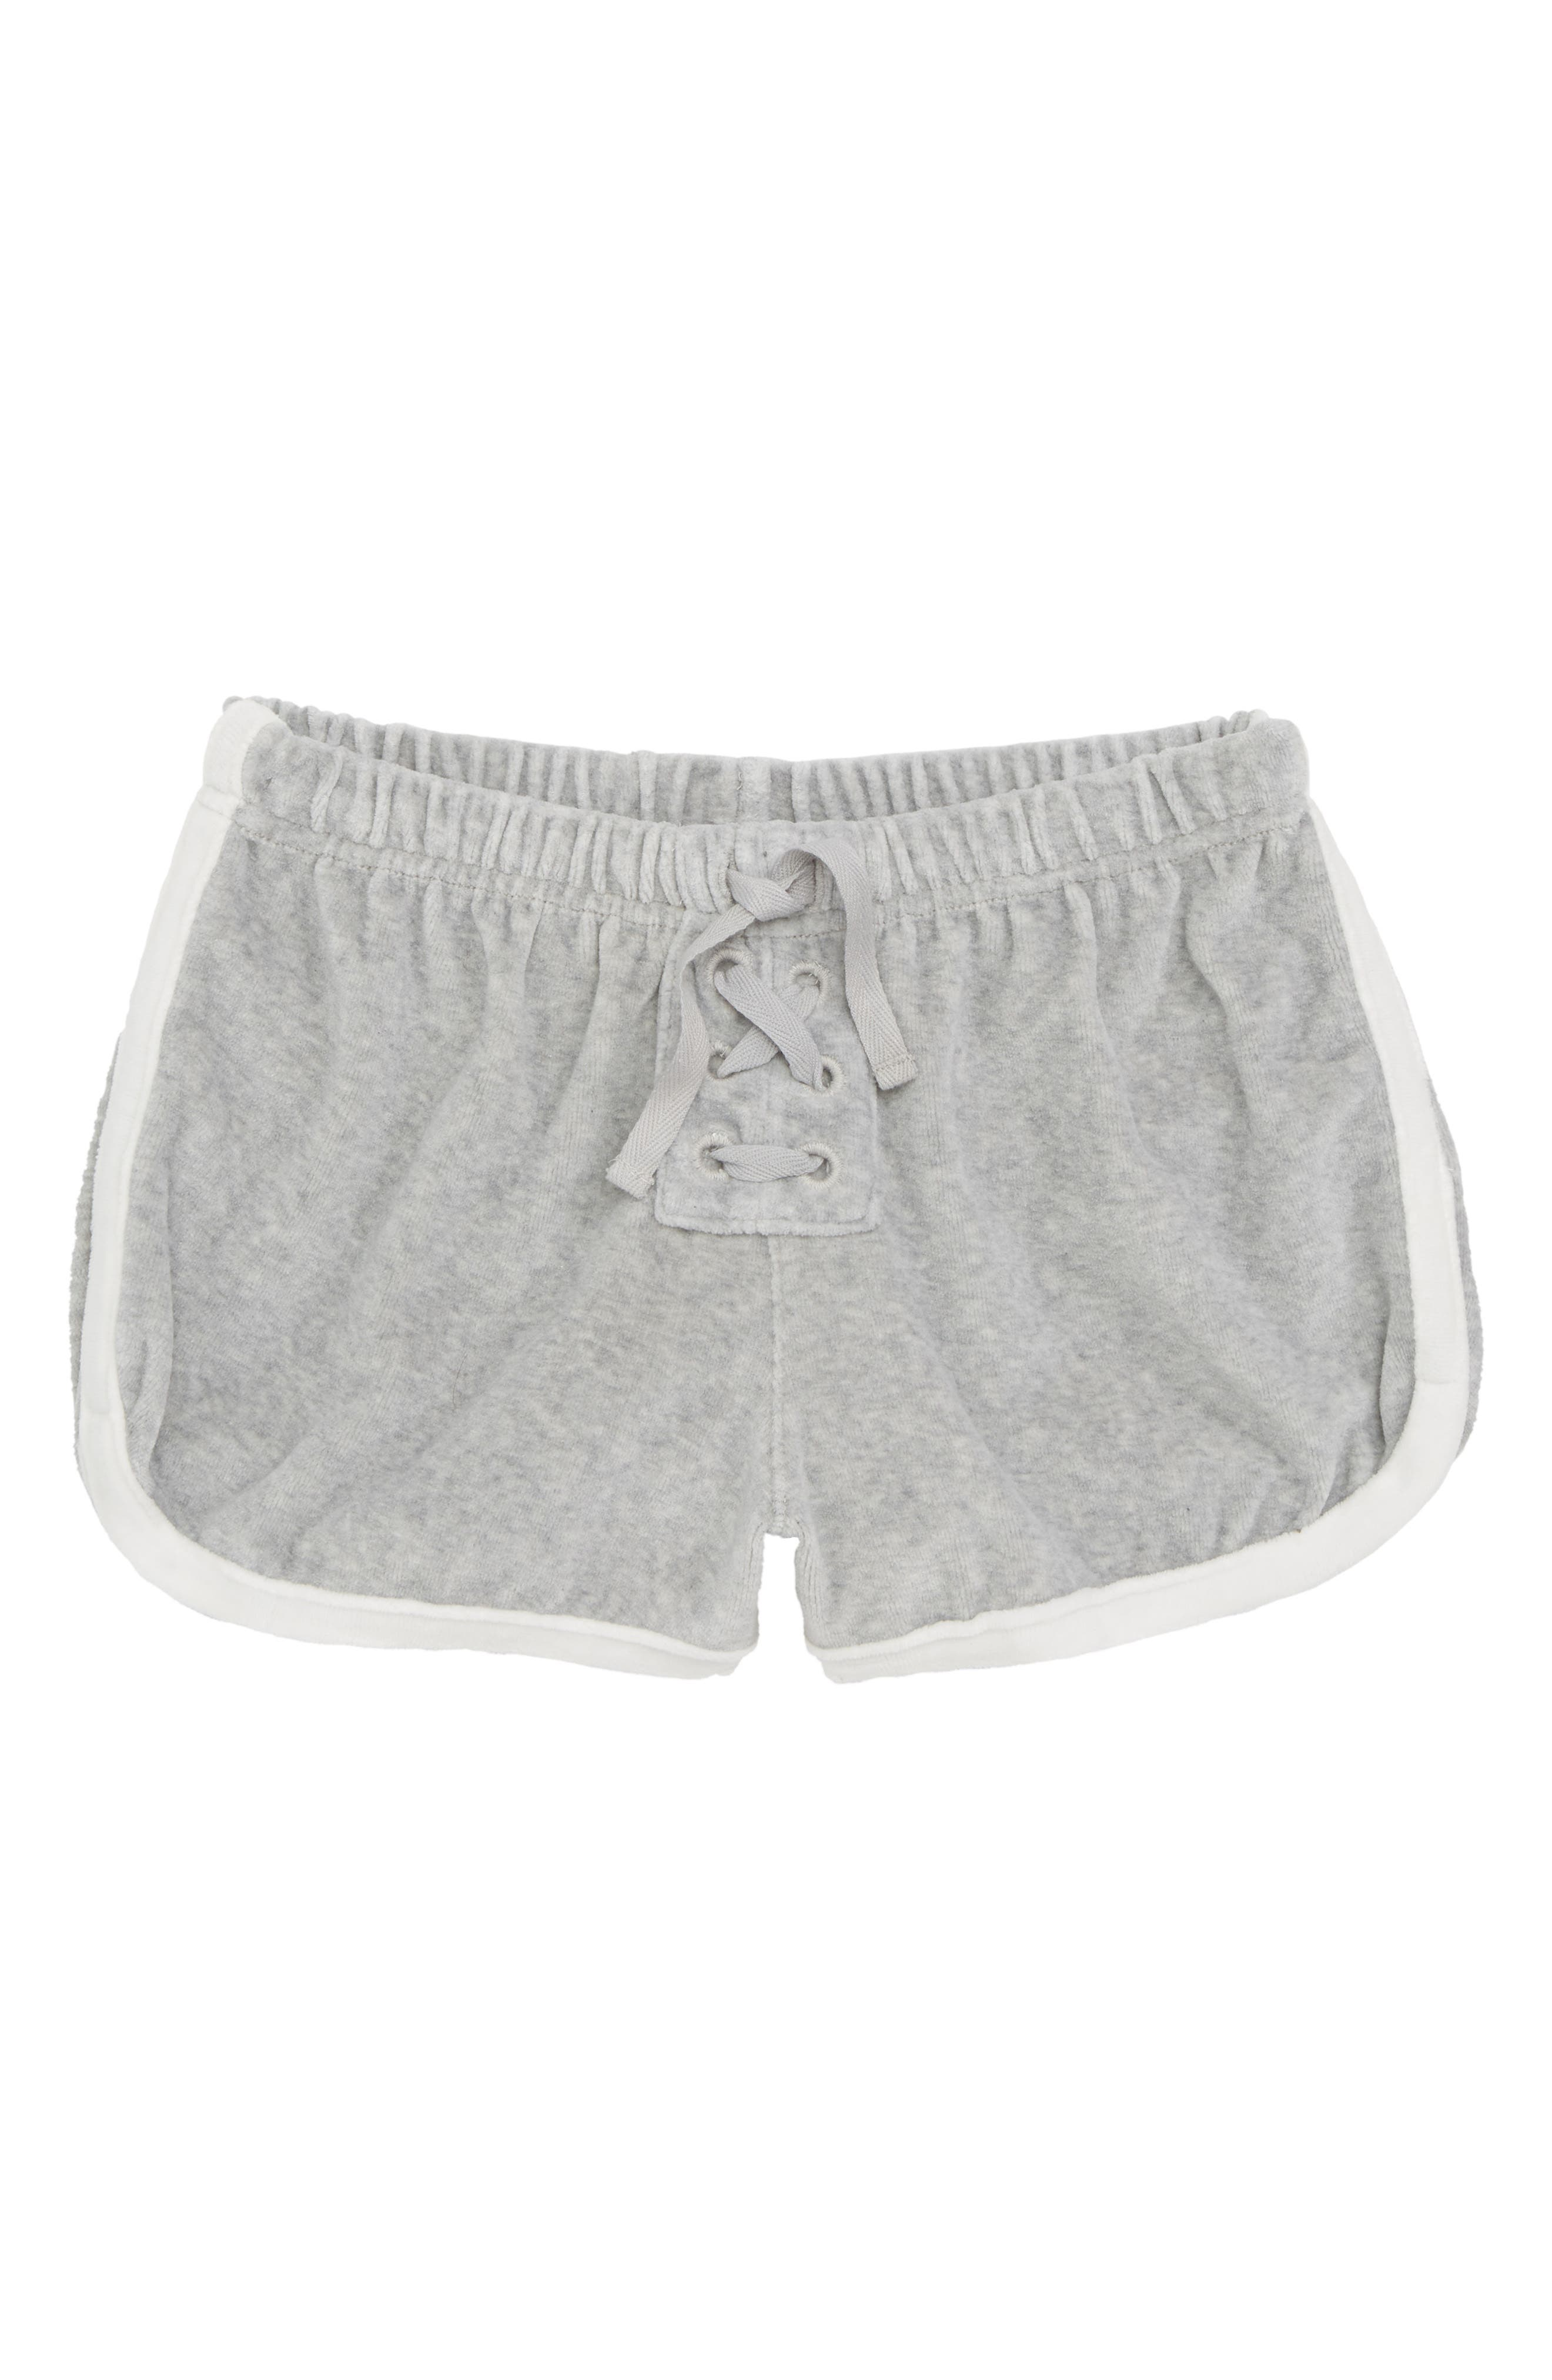 Velour Track Shorts,                         Main,                         color, 050